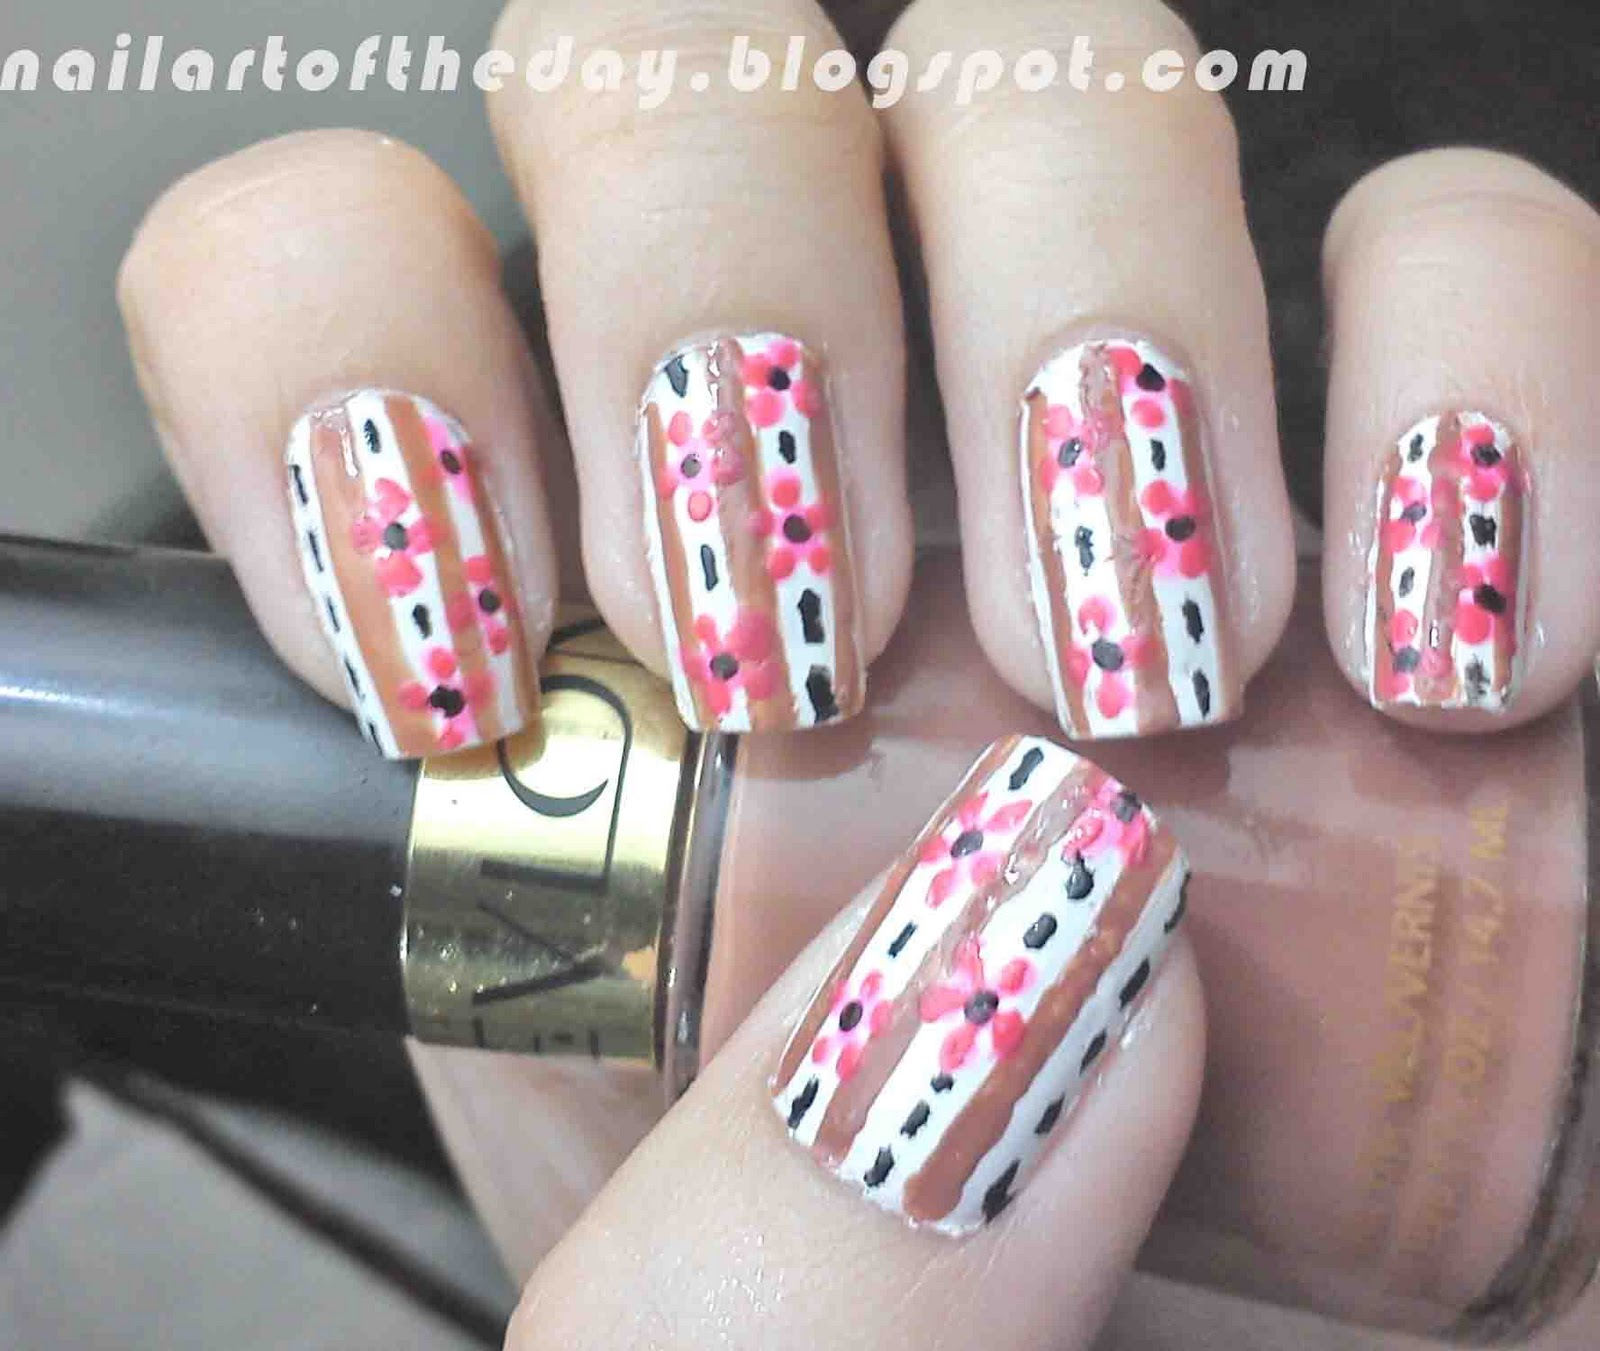 Nail art of the day nail art hanging flowers Hang up paintings without nails